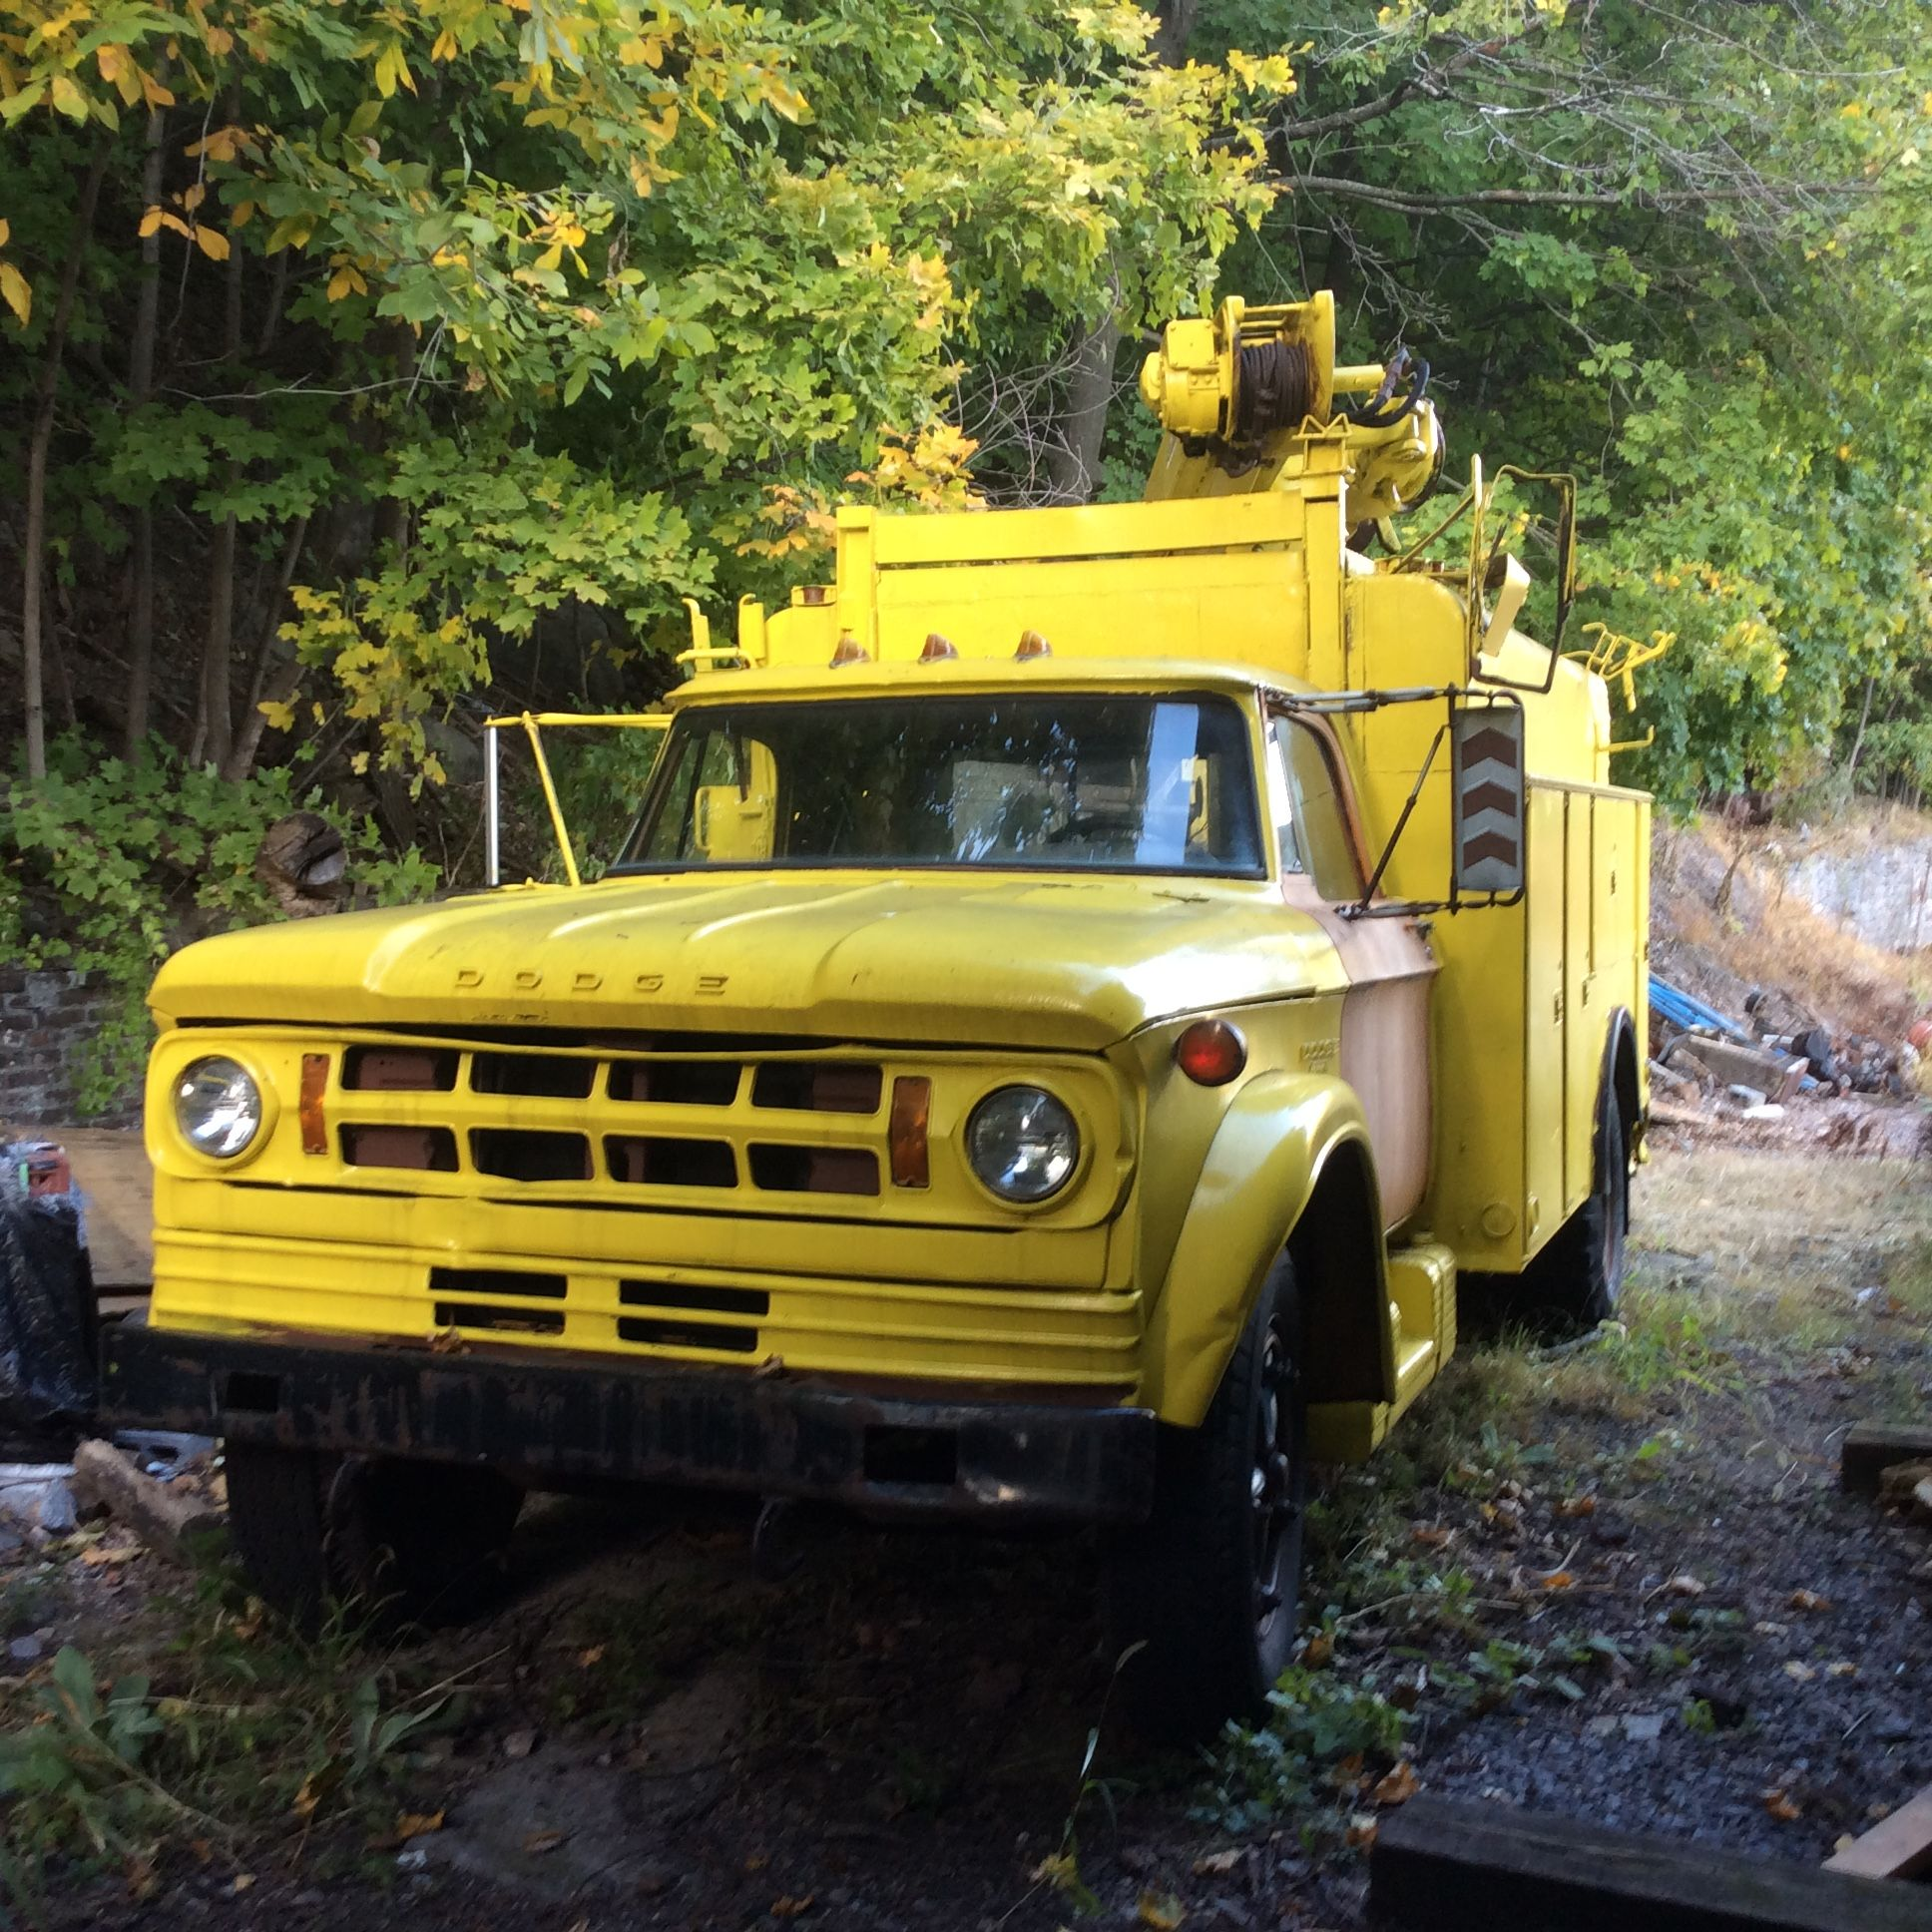 On 10-15-16 this vintage Dodge D-600 with a Pitman Pole Cat